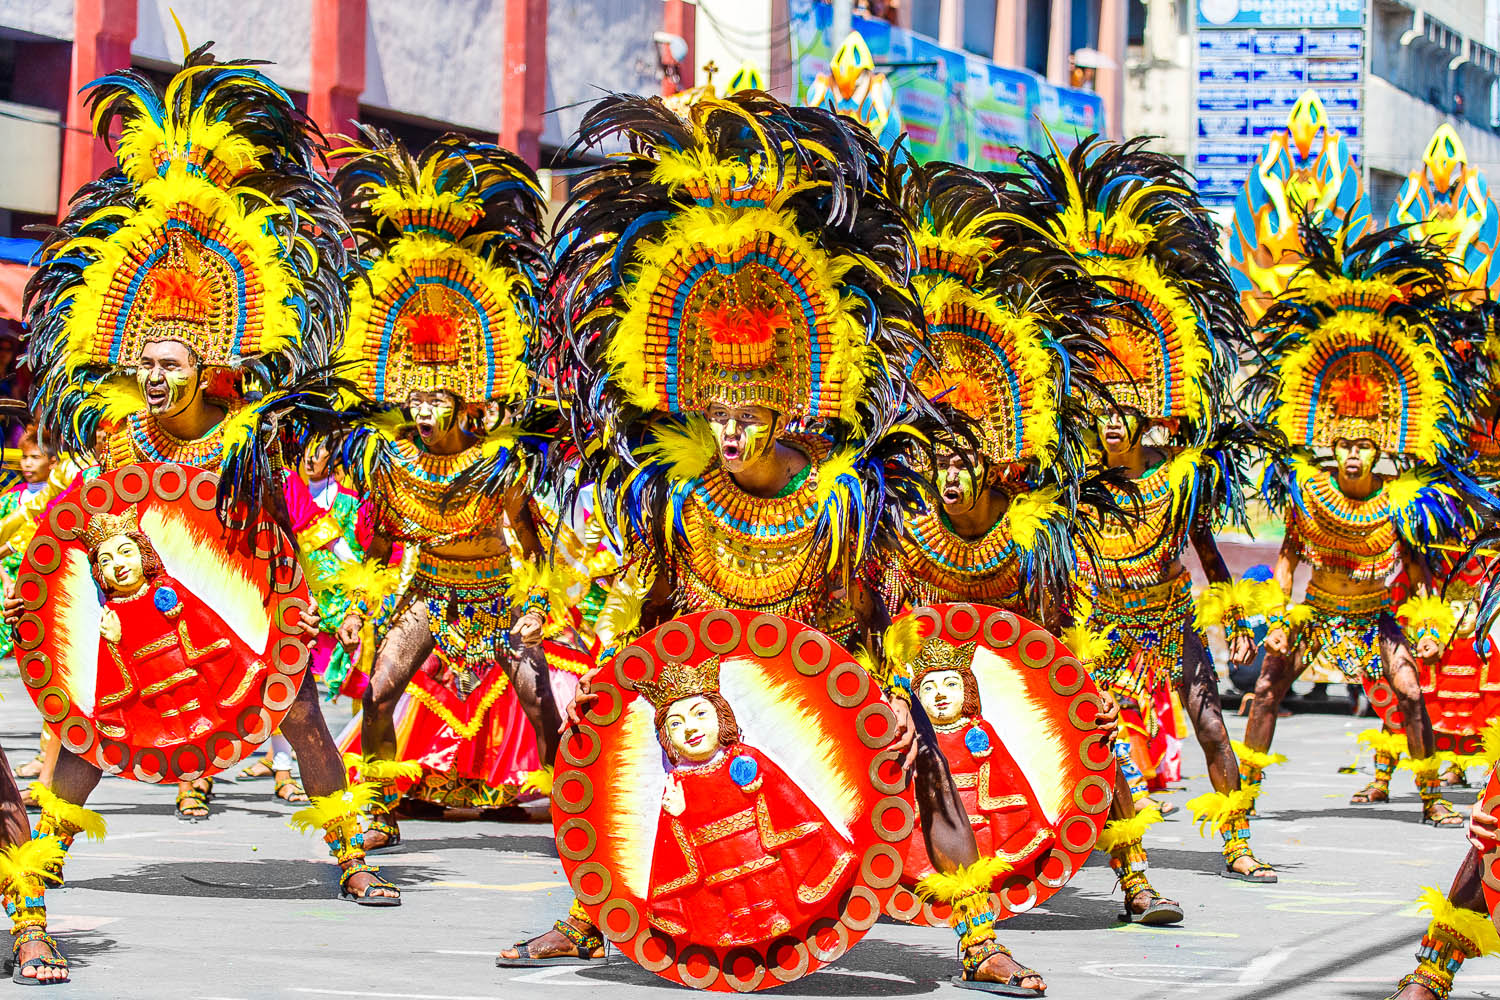 Street dancers at a festival in the Philippines. Image:  © Elena Frolova